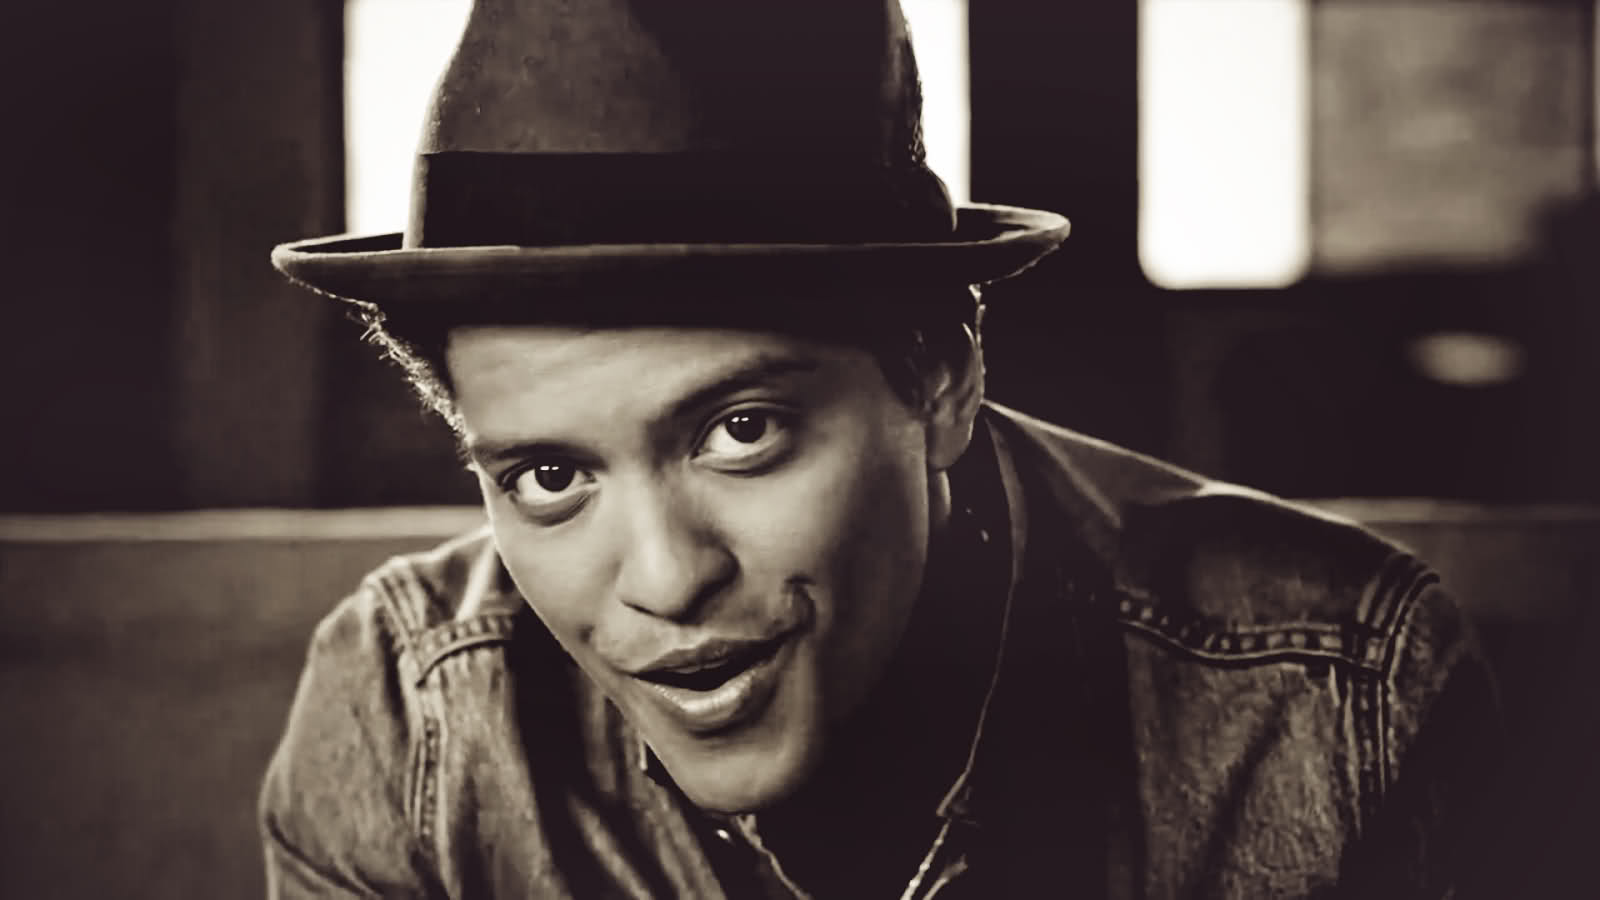 bruno mars on planet mars - photo #23